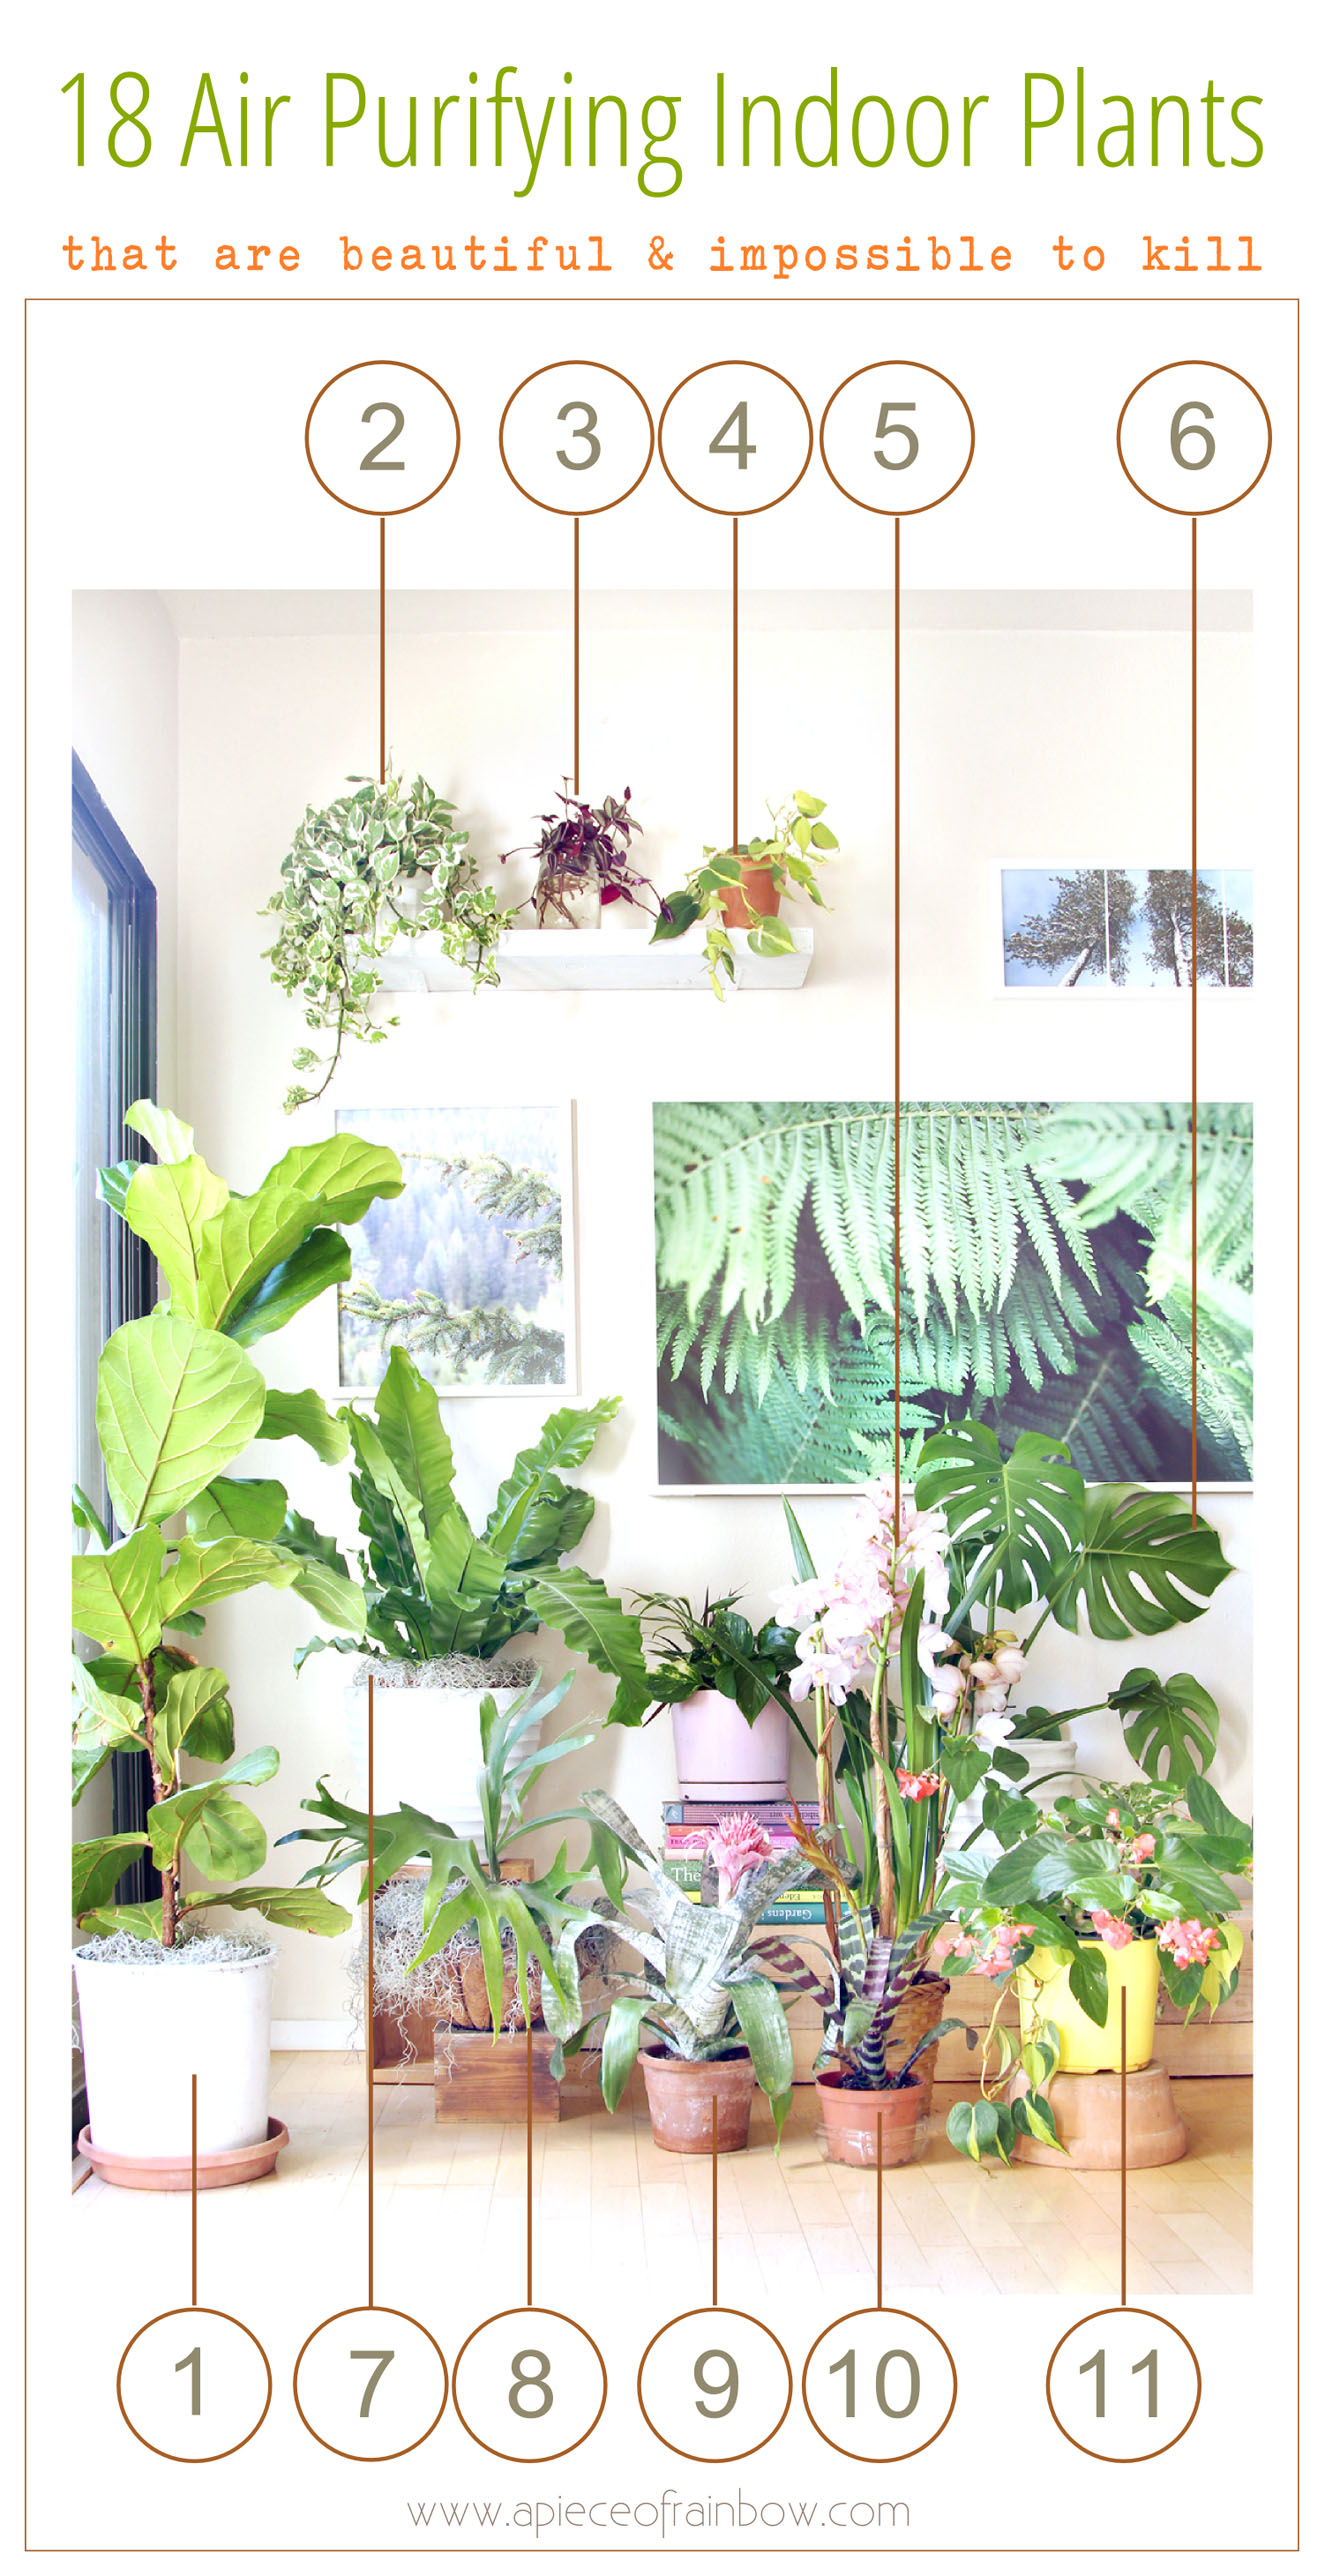 18 most beautiful indoor plants 5 easy care tips a piece of rainbow - Best house plants low light ...